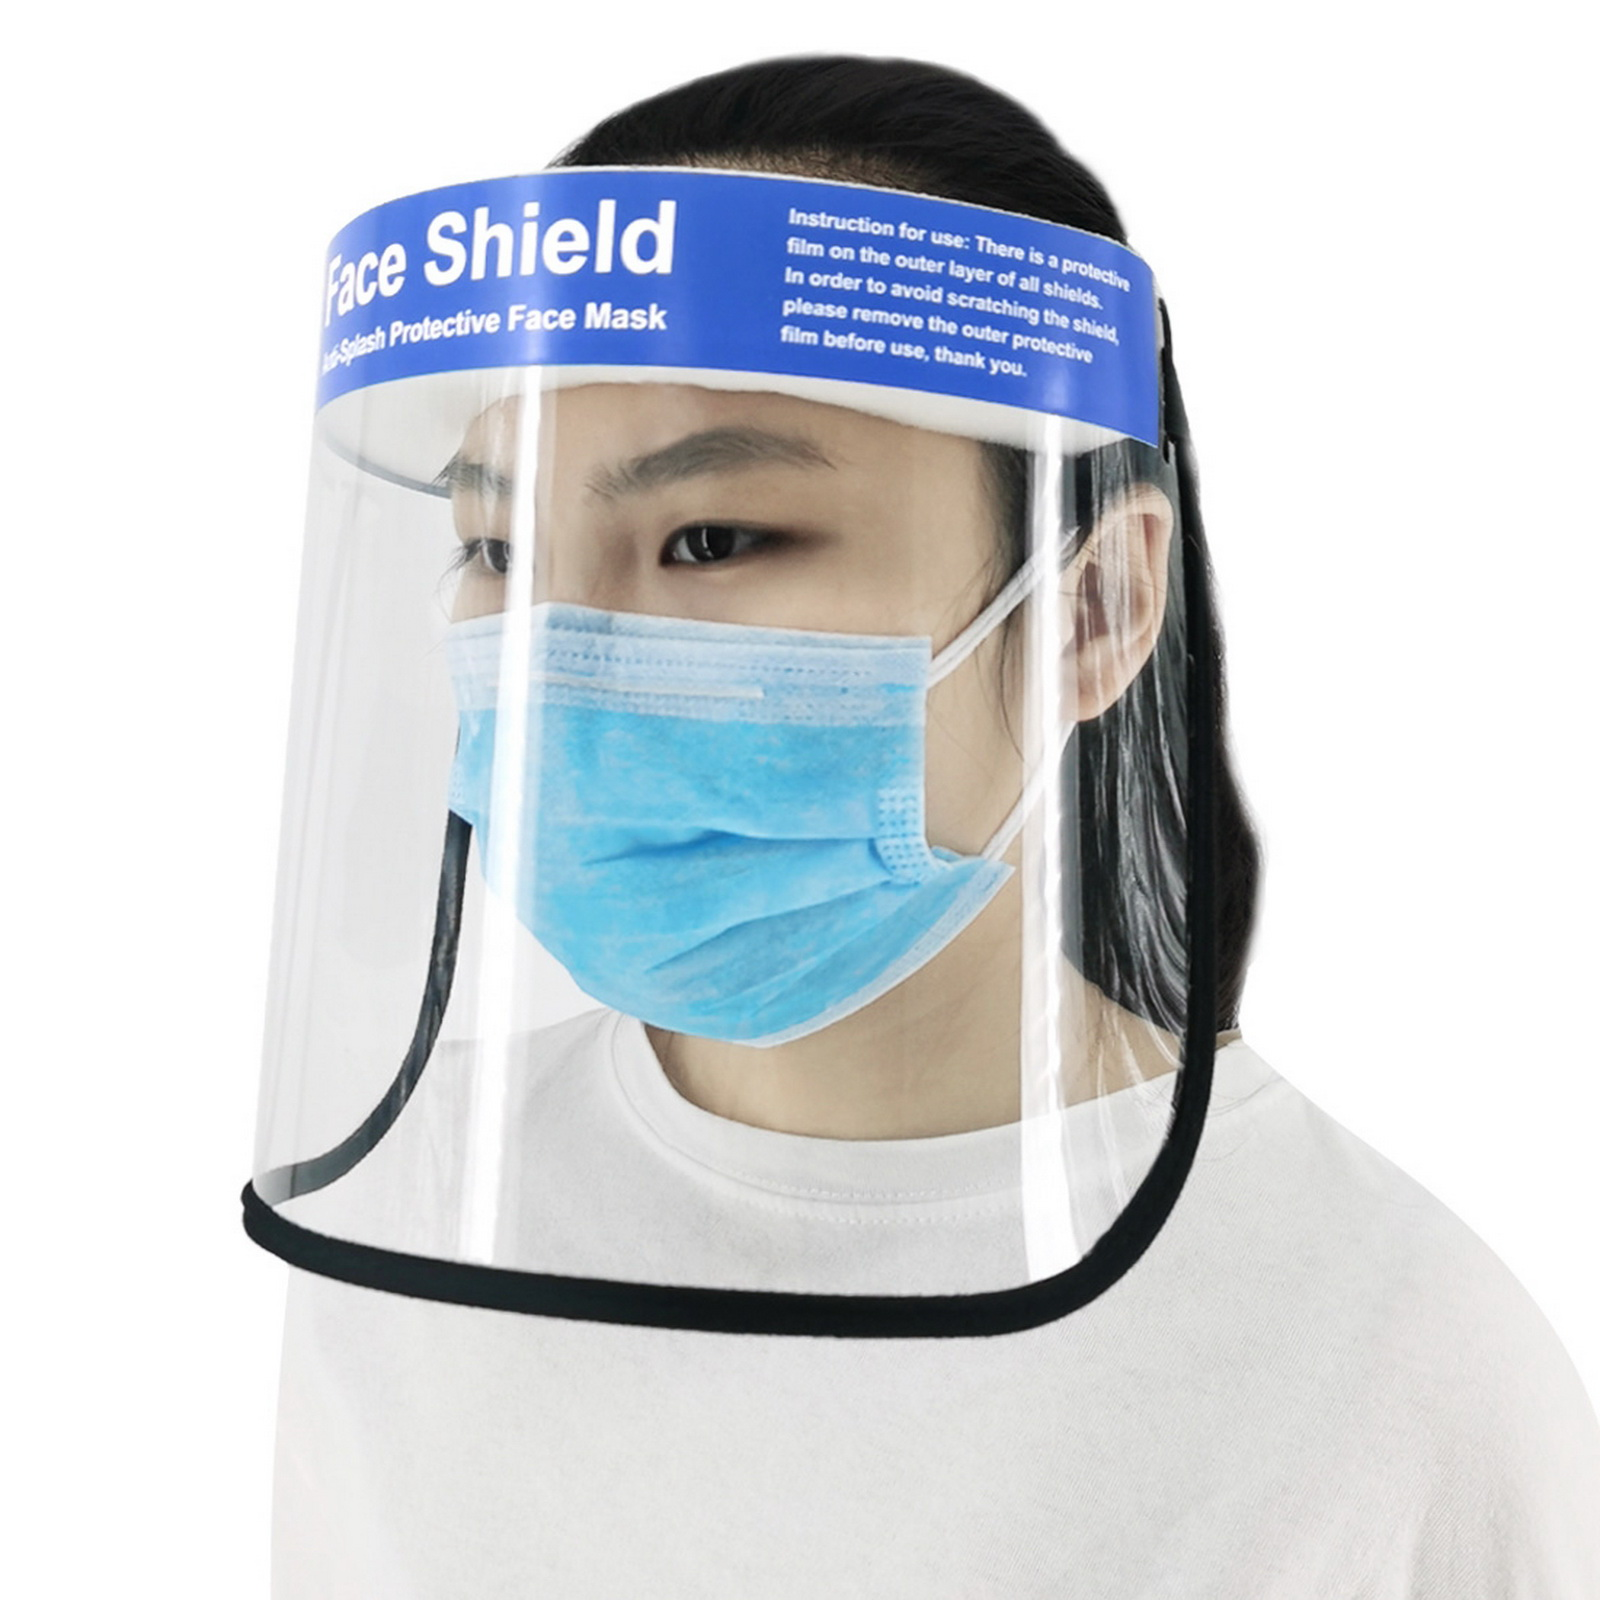 1 x Kids Full Face Shield Visor Protection Film Reusable Eye Mouth Safety Guard